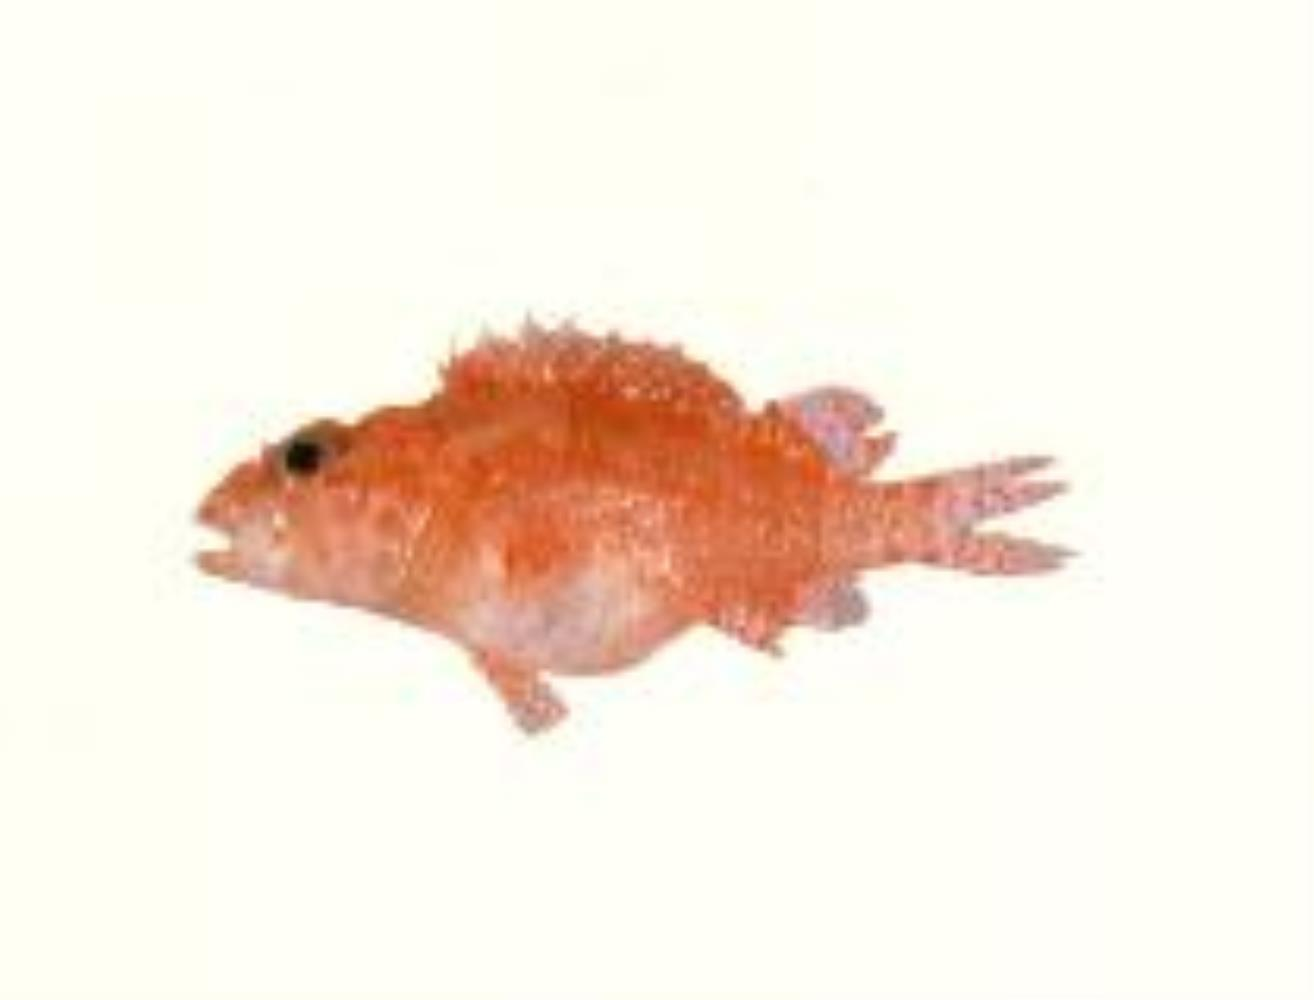 Little Scorpionfish